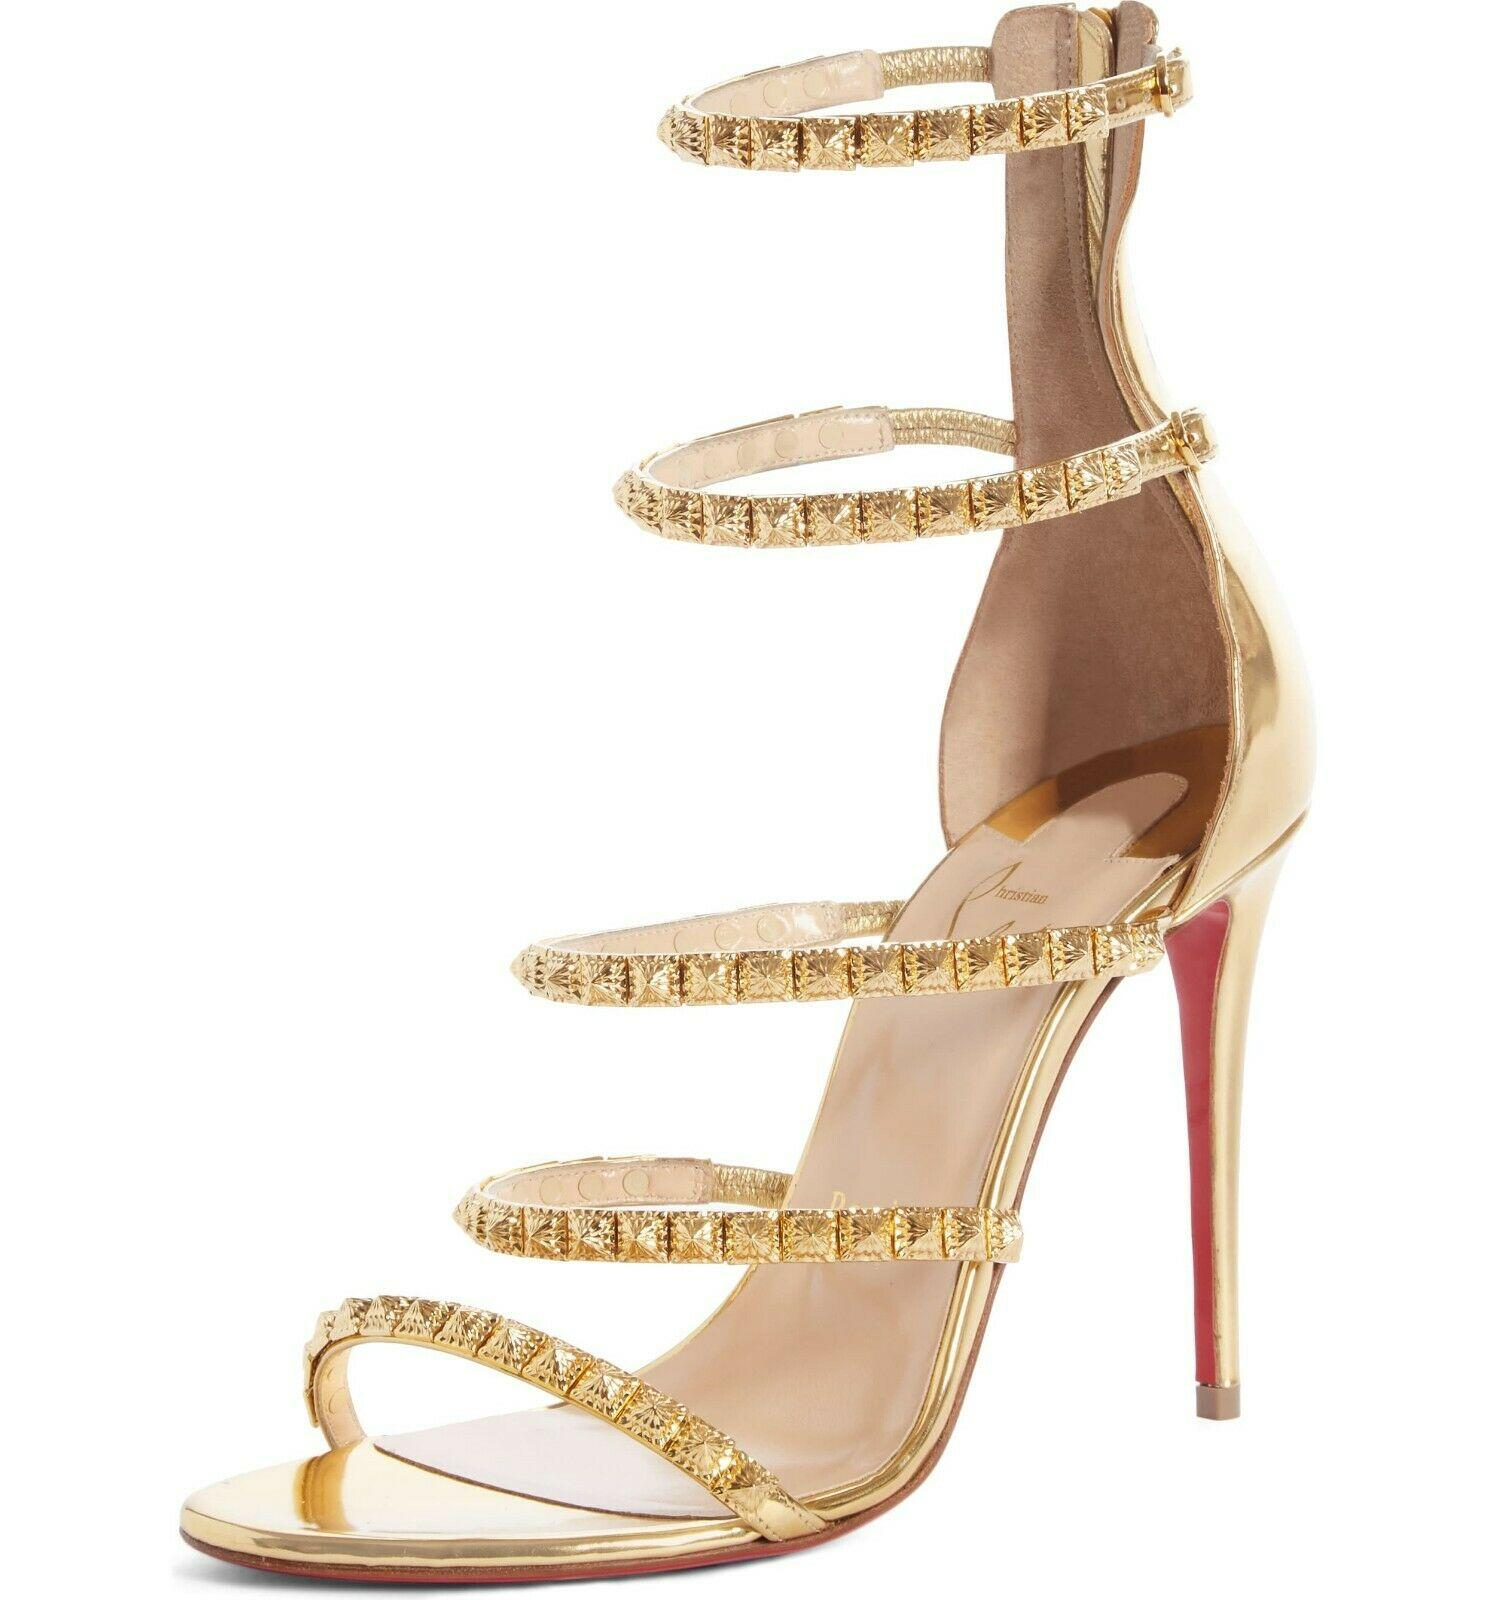 $1295 Christian Louboutin Forever Girl Spike Cage Sandals Gold Pumps 37.5